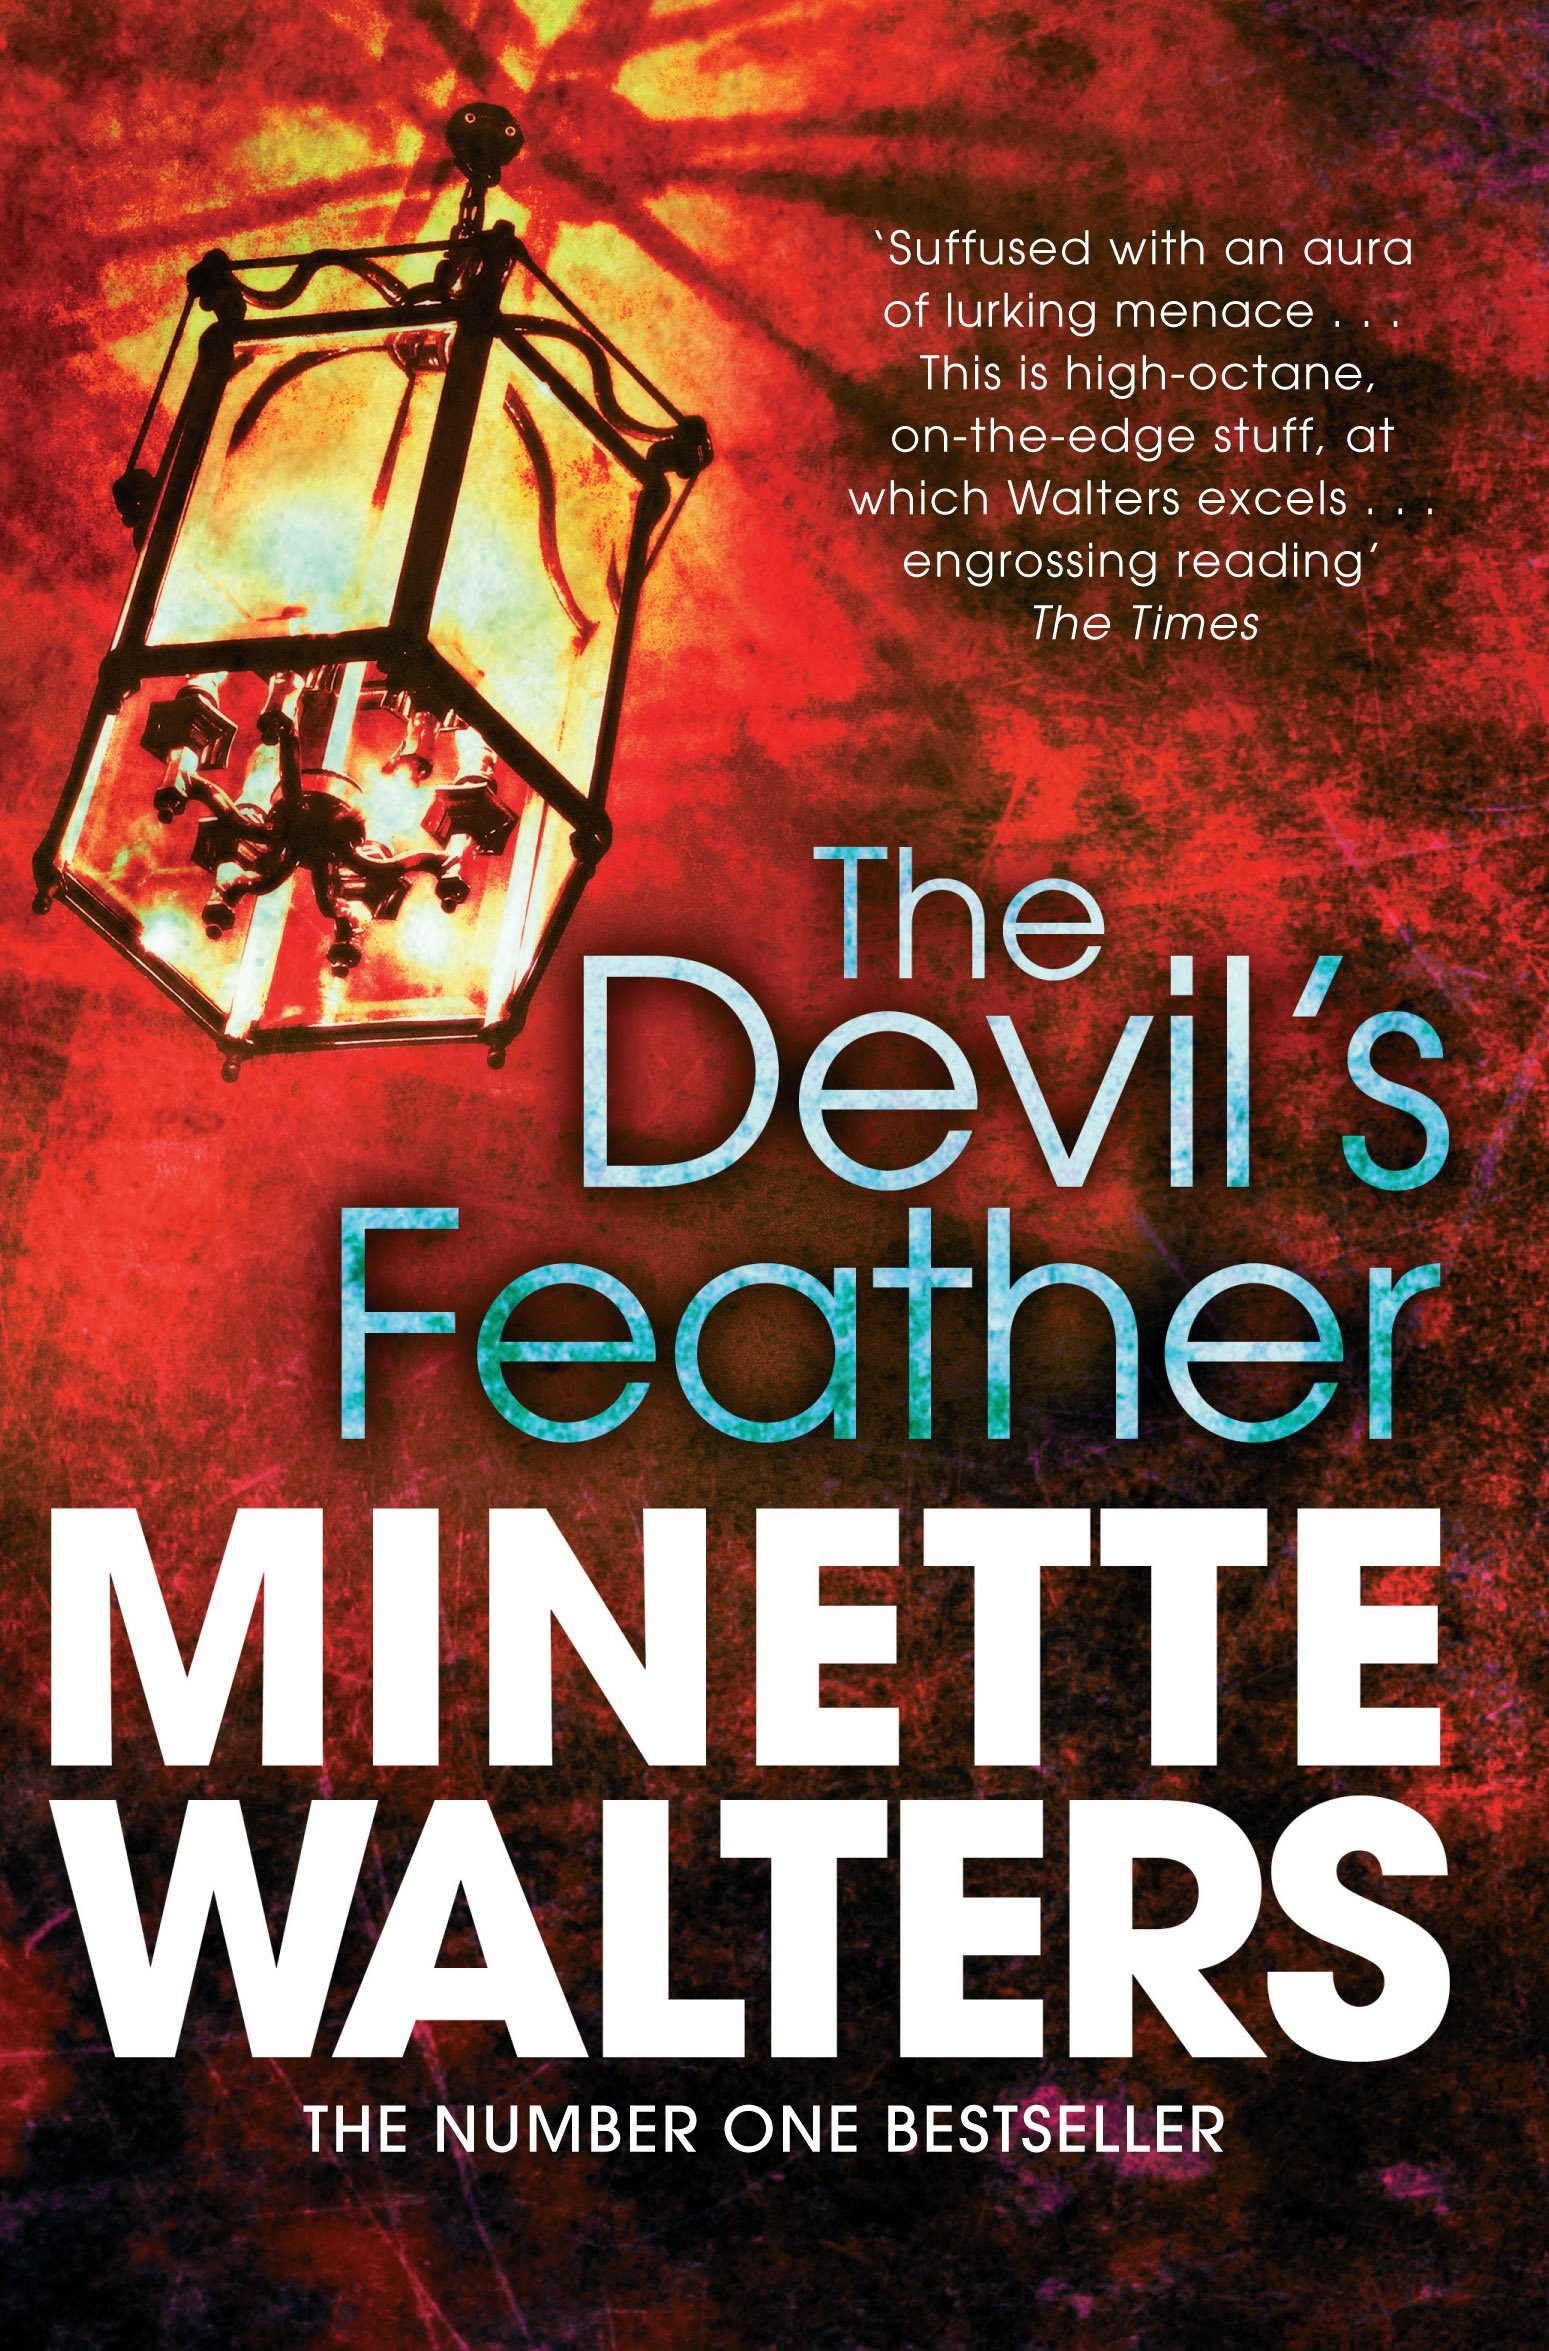 Amazon.in: Buy The Devil's Feather Book Online at Low Prices in India | The  Devil's Feather Reviews & Ratings